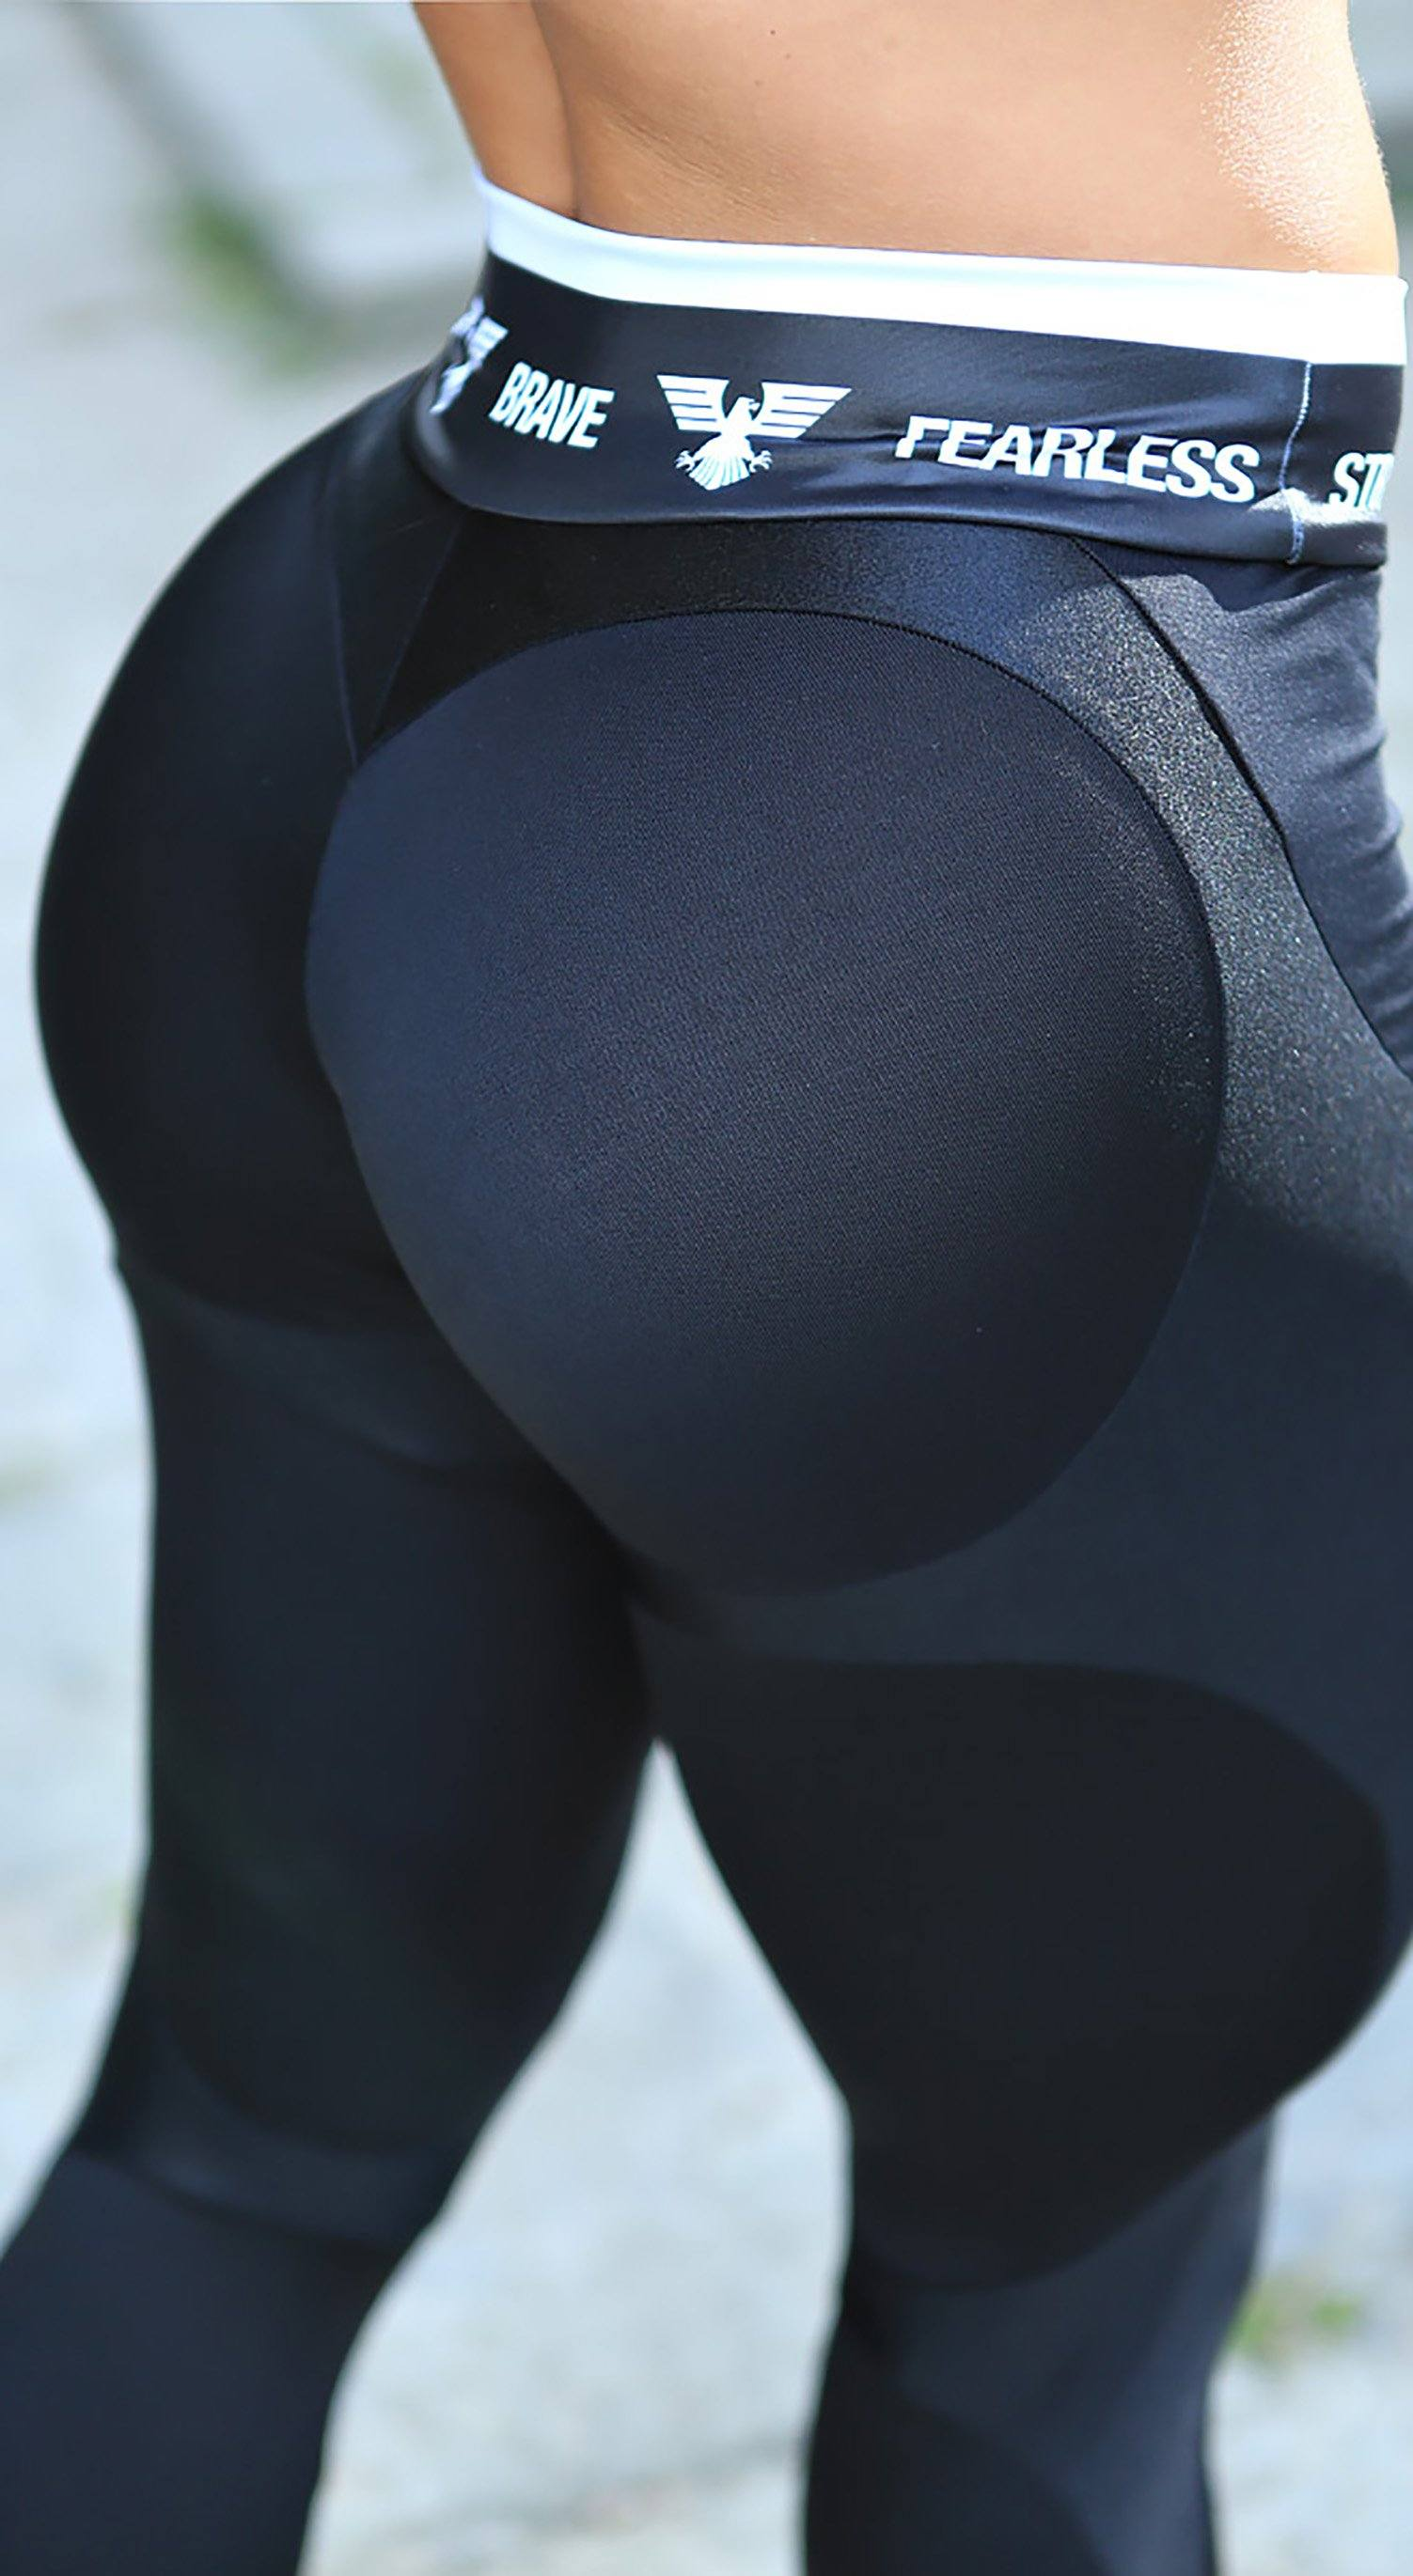 Brazilian Workout Legging - Apple Booty Black